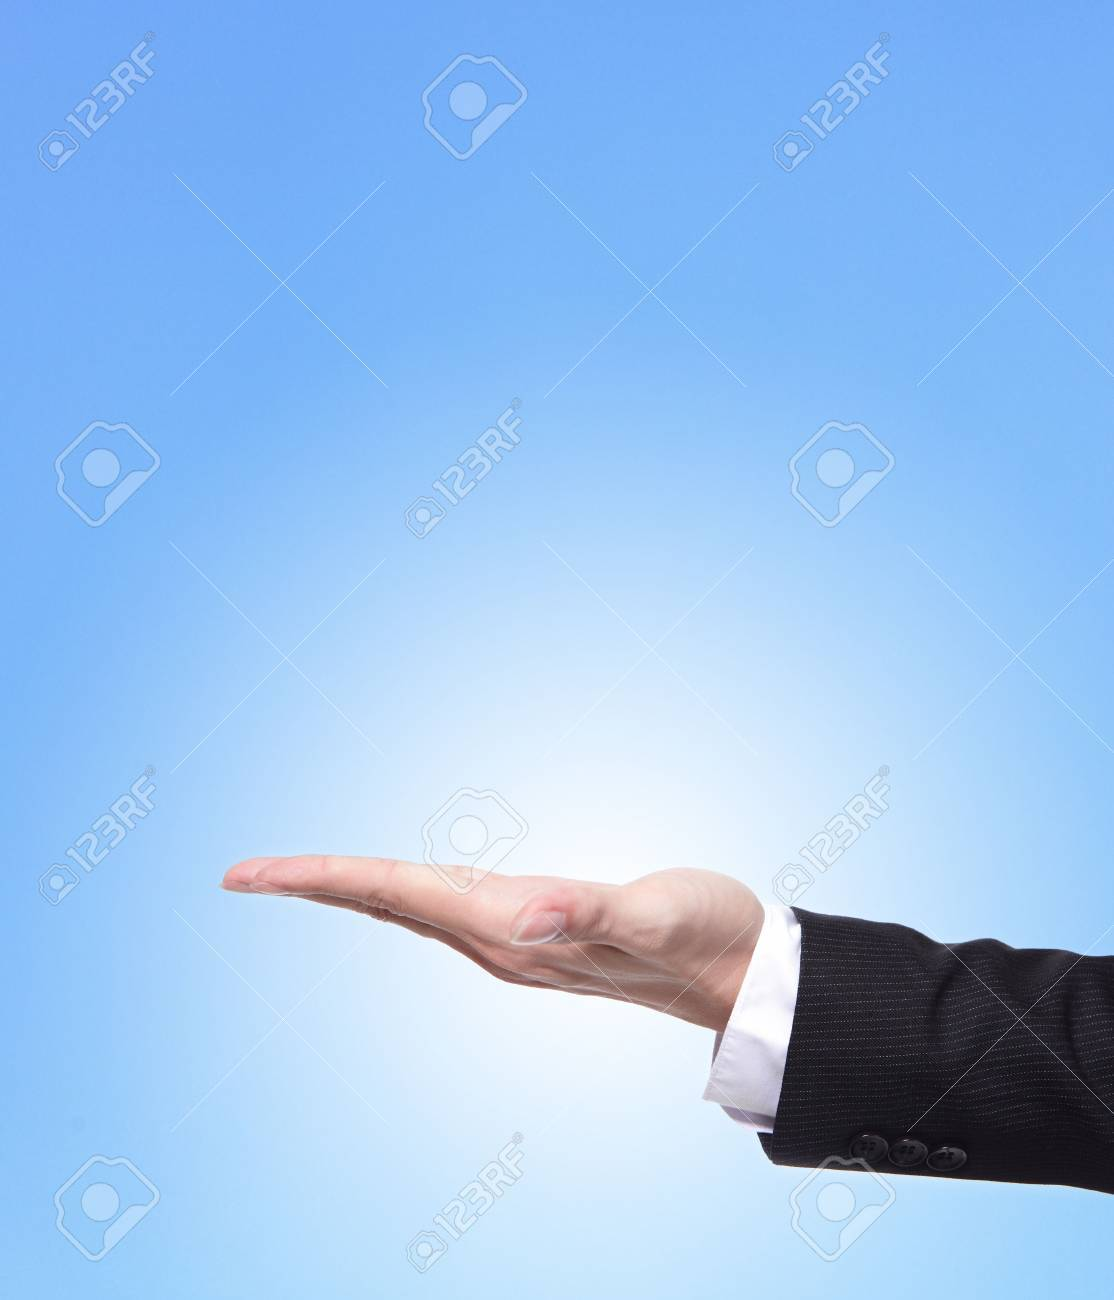 Business man holding something on his hand close up isolated on blue background, copy space area in the image is great for you Stock Photo - 16987958